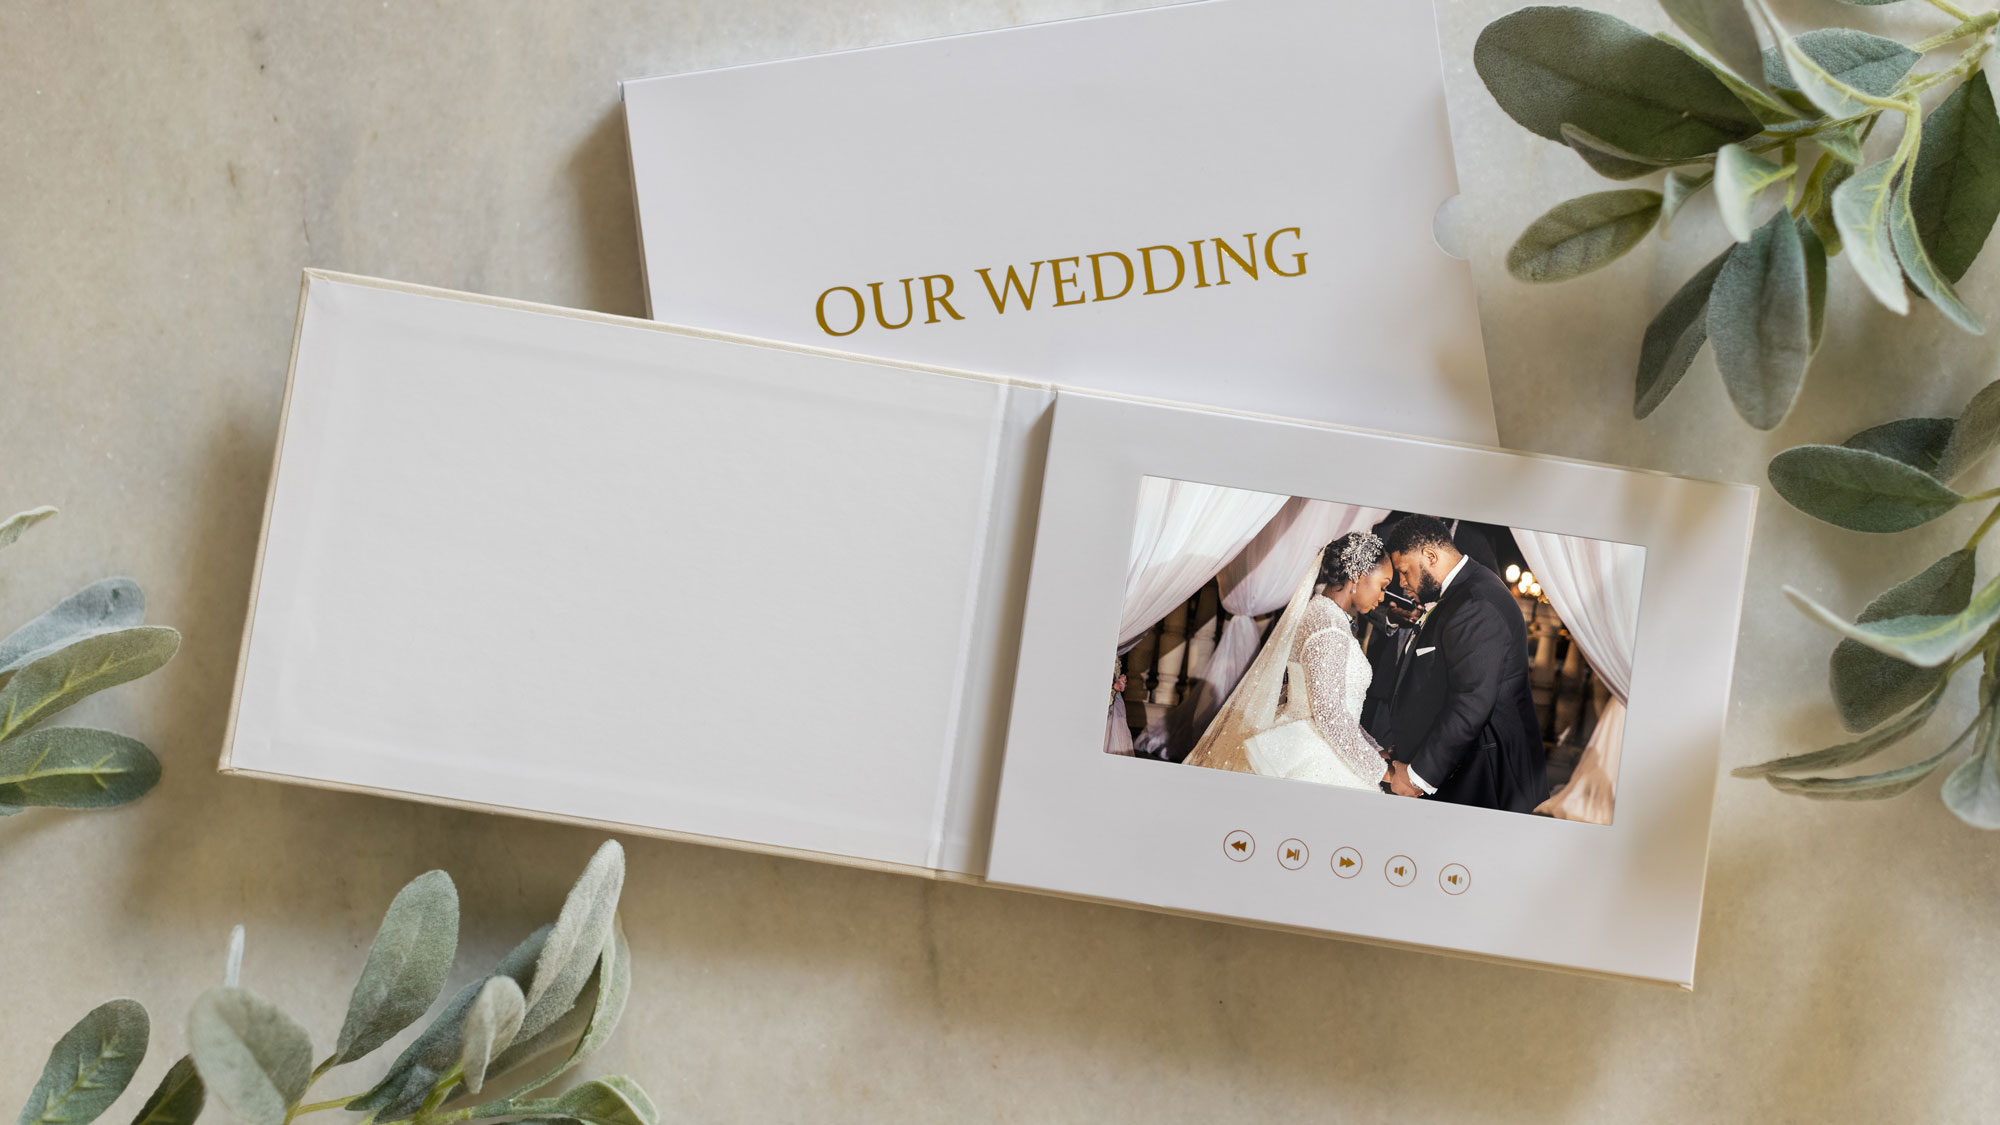 A Wedding Video book on a coffee table - The Motion Books